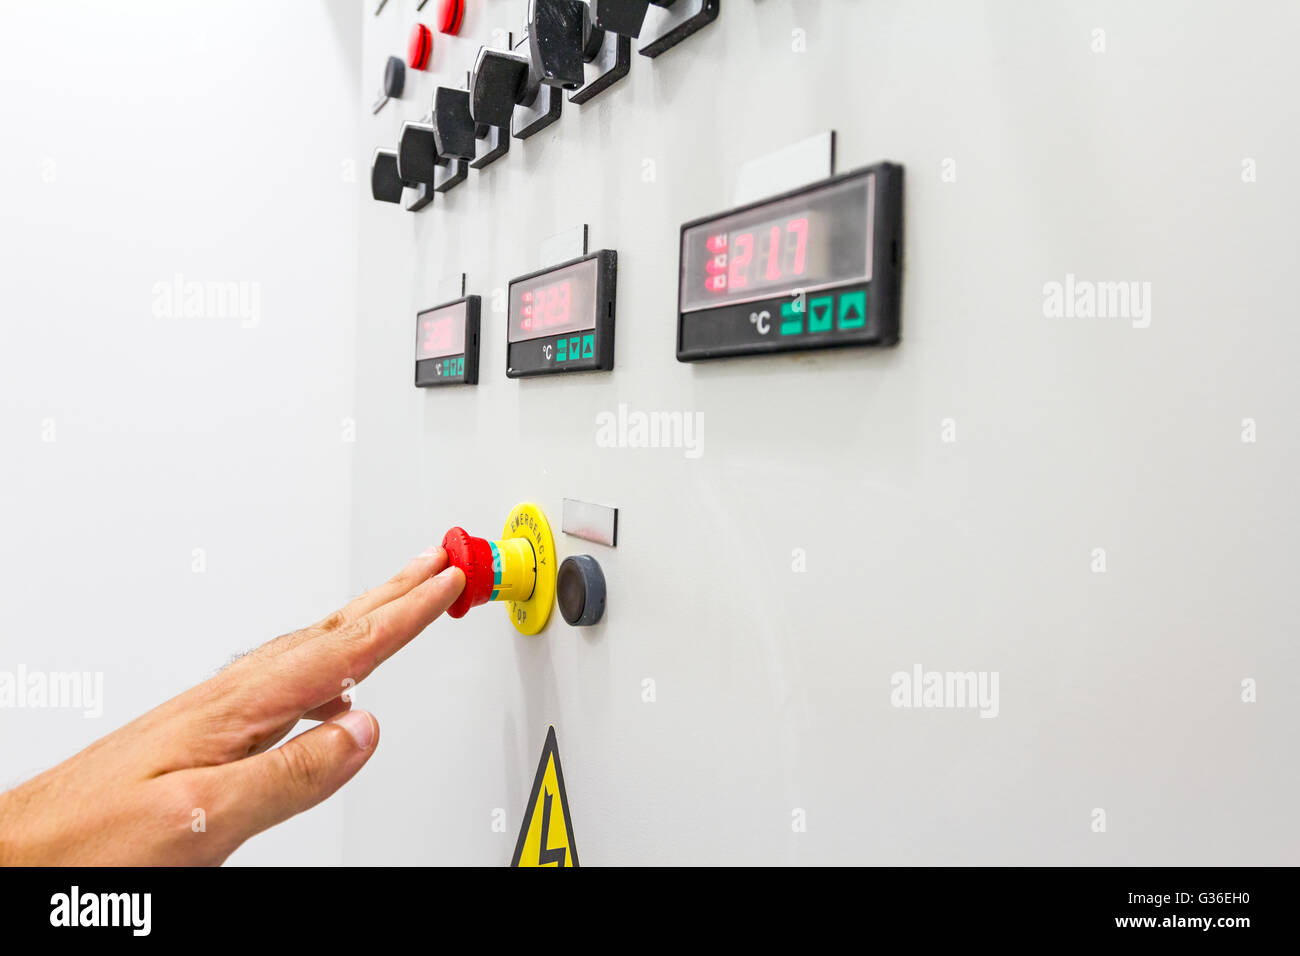 Fuse Box Stock Photos Images Alamy Ads Activation Or Shutdown With Display For Digital Temperature Gauge Warning Sticker And